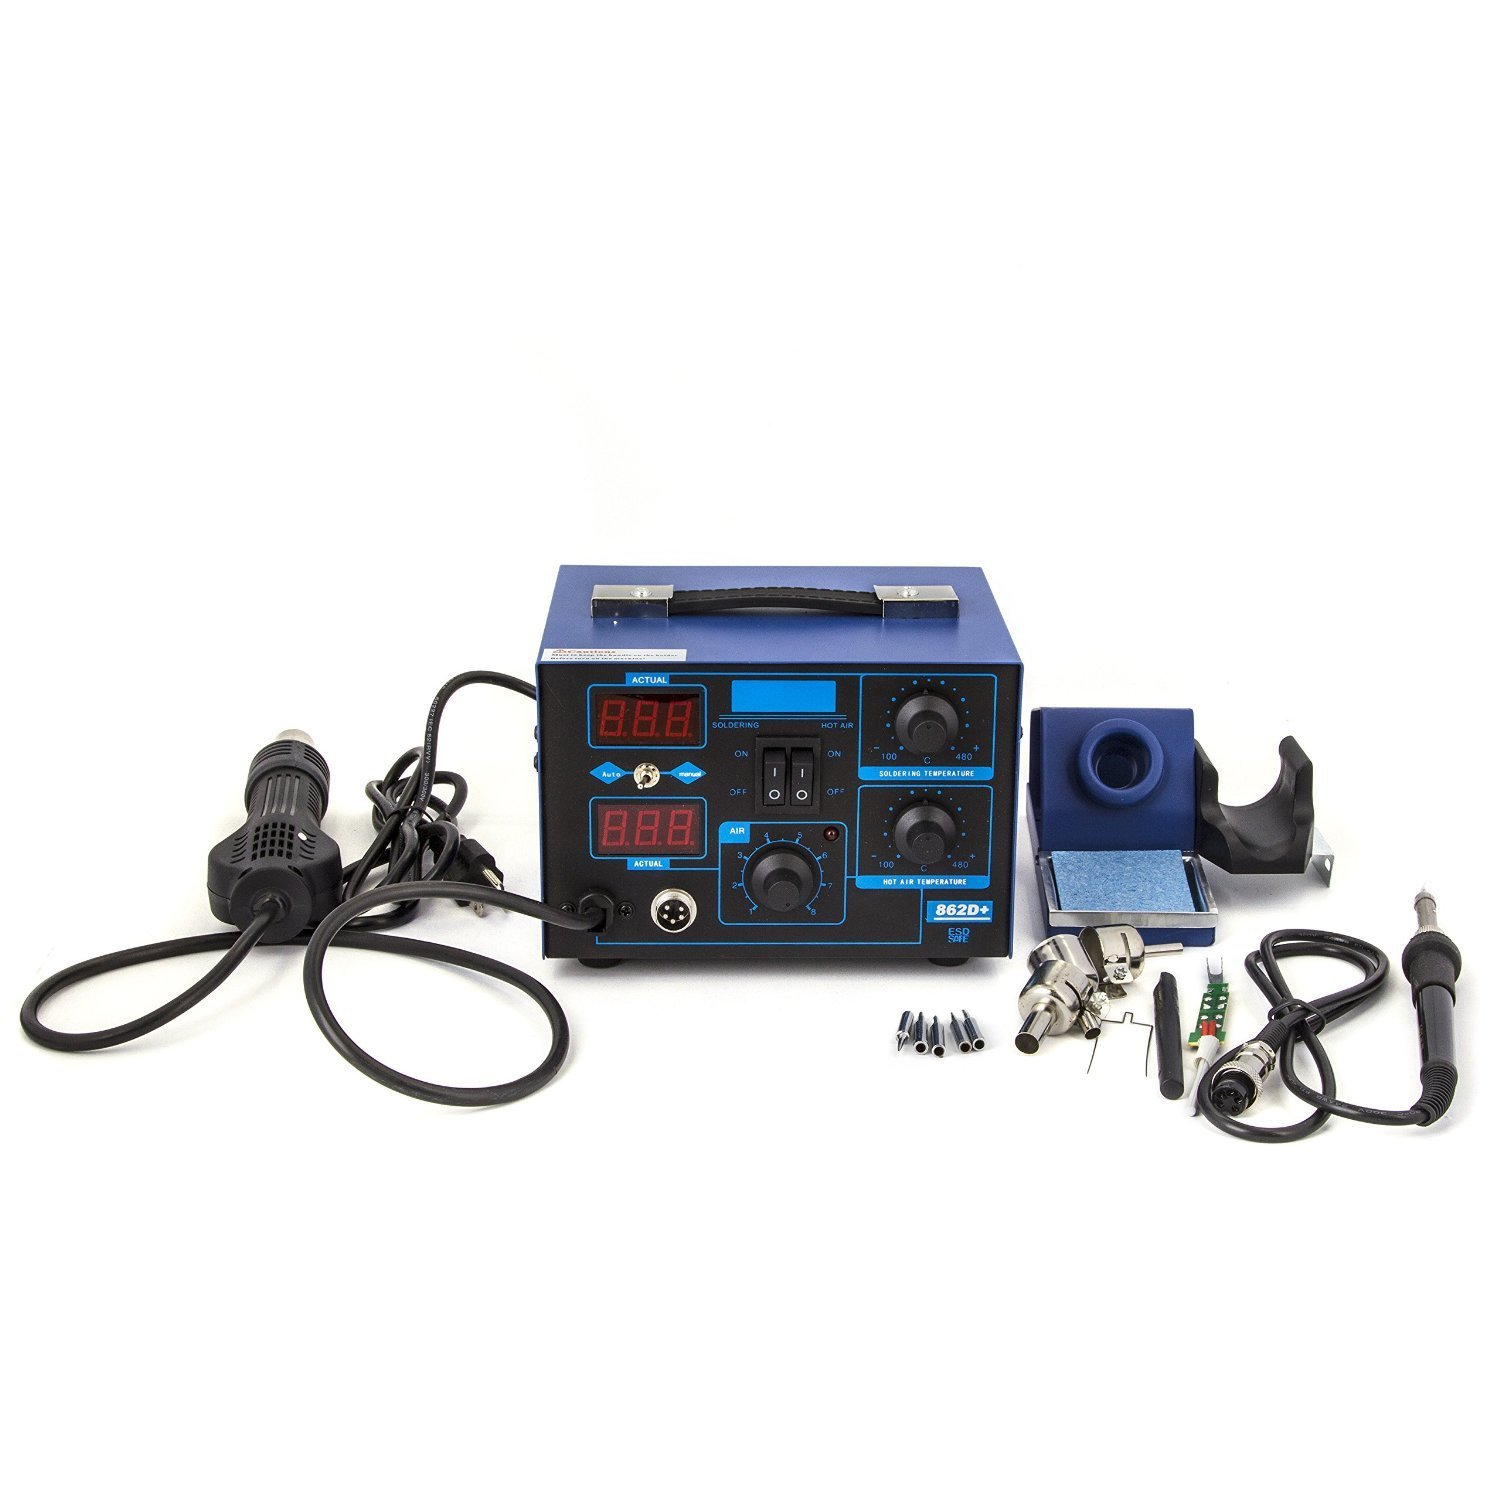 Kendal 2 IN 1 SMD HOT AIR REWORK SOLDERING IRON STATION 862D+ 0